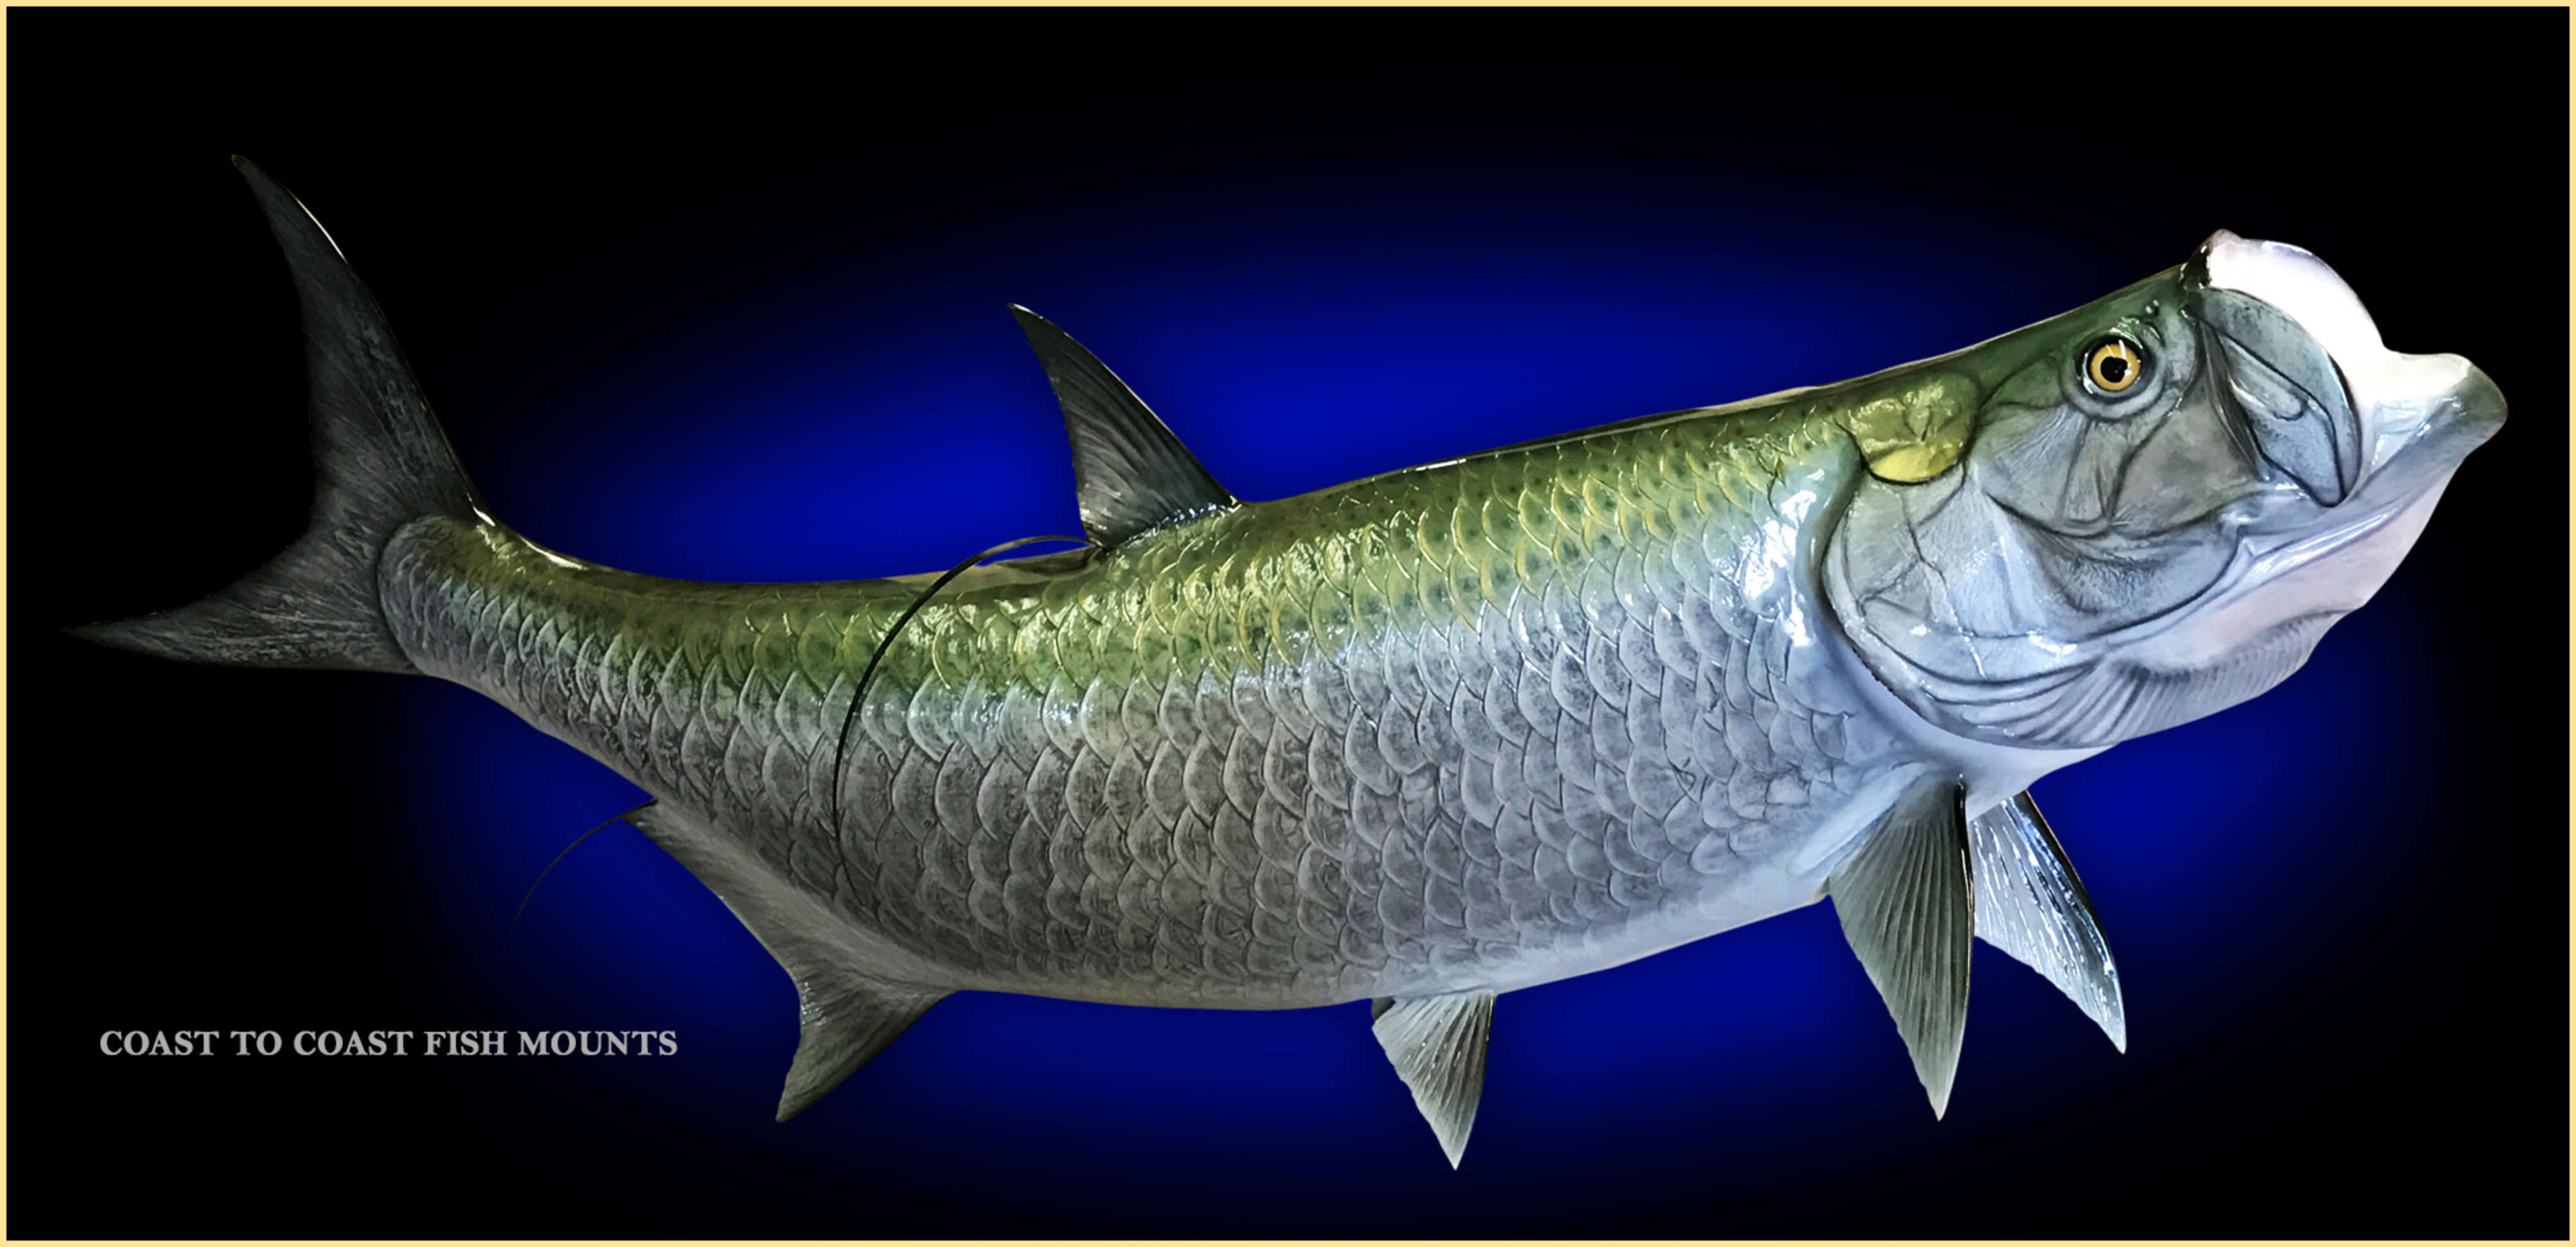 Tarpon fish mount and fish replicas coast to coast for Image of fish